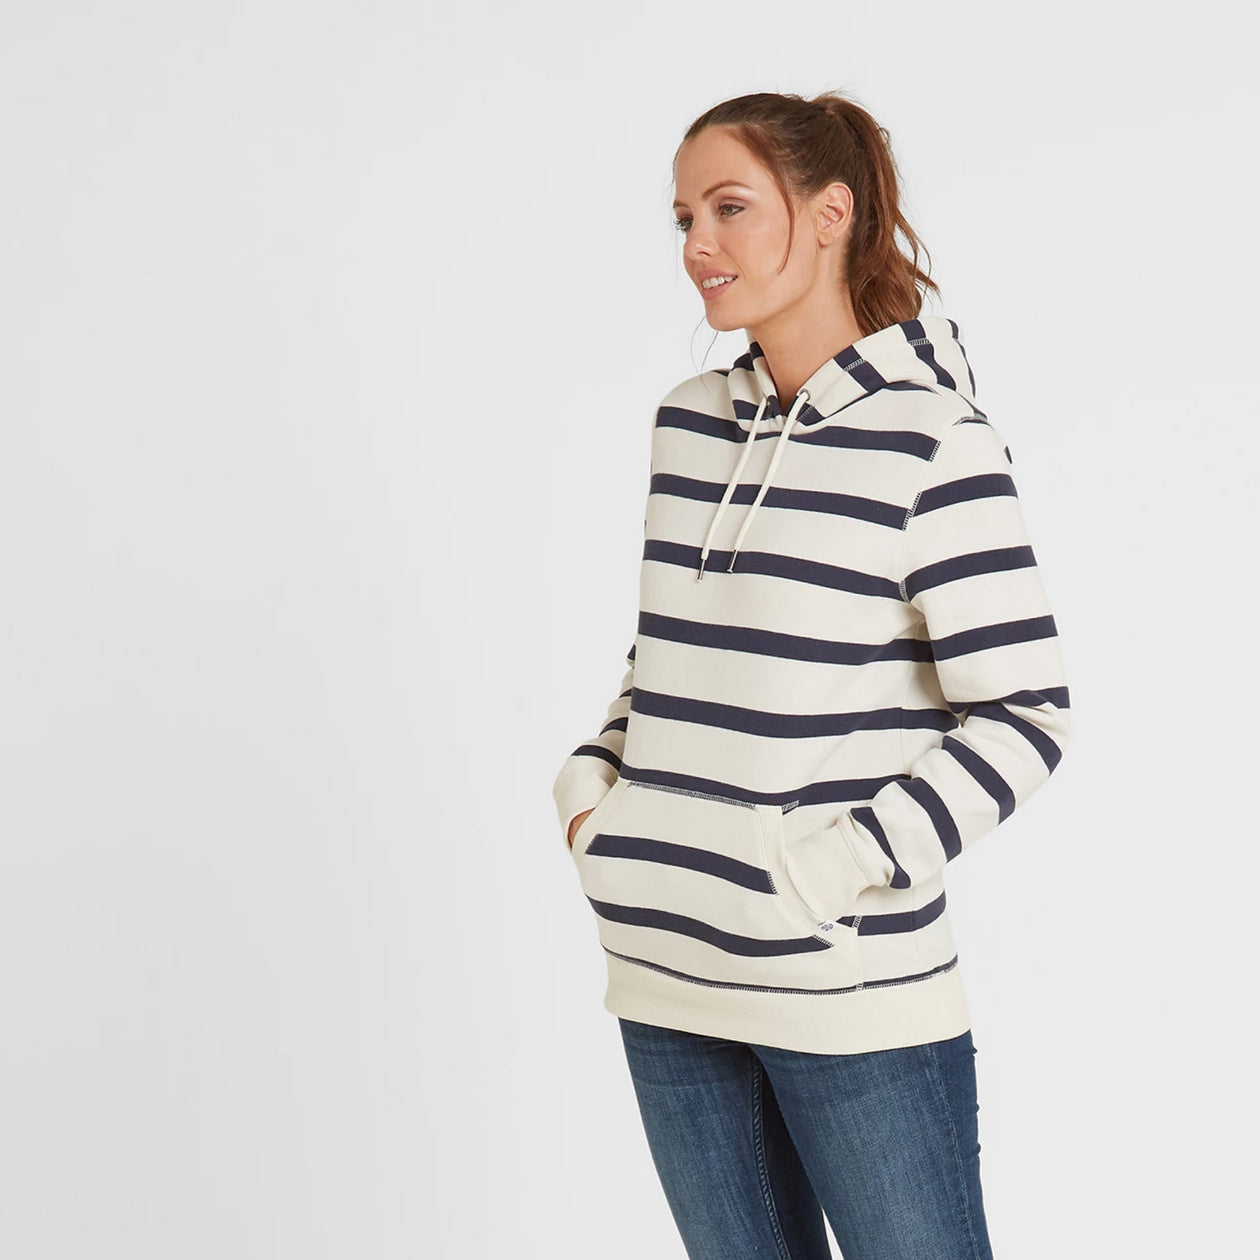 Ruth Womens Hoody Stripe - White/Dark Indigo image 4